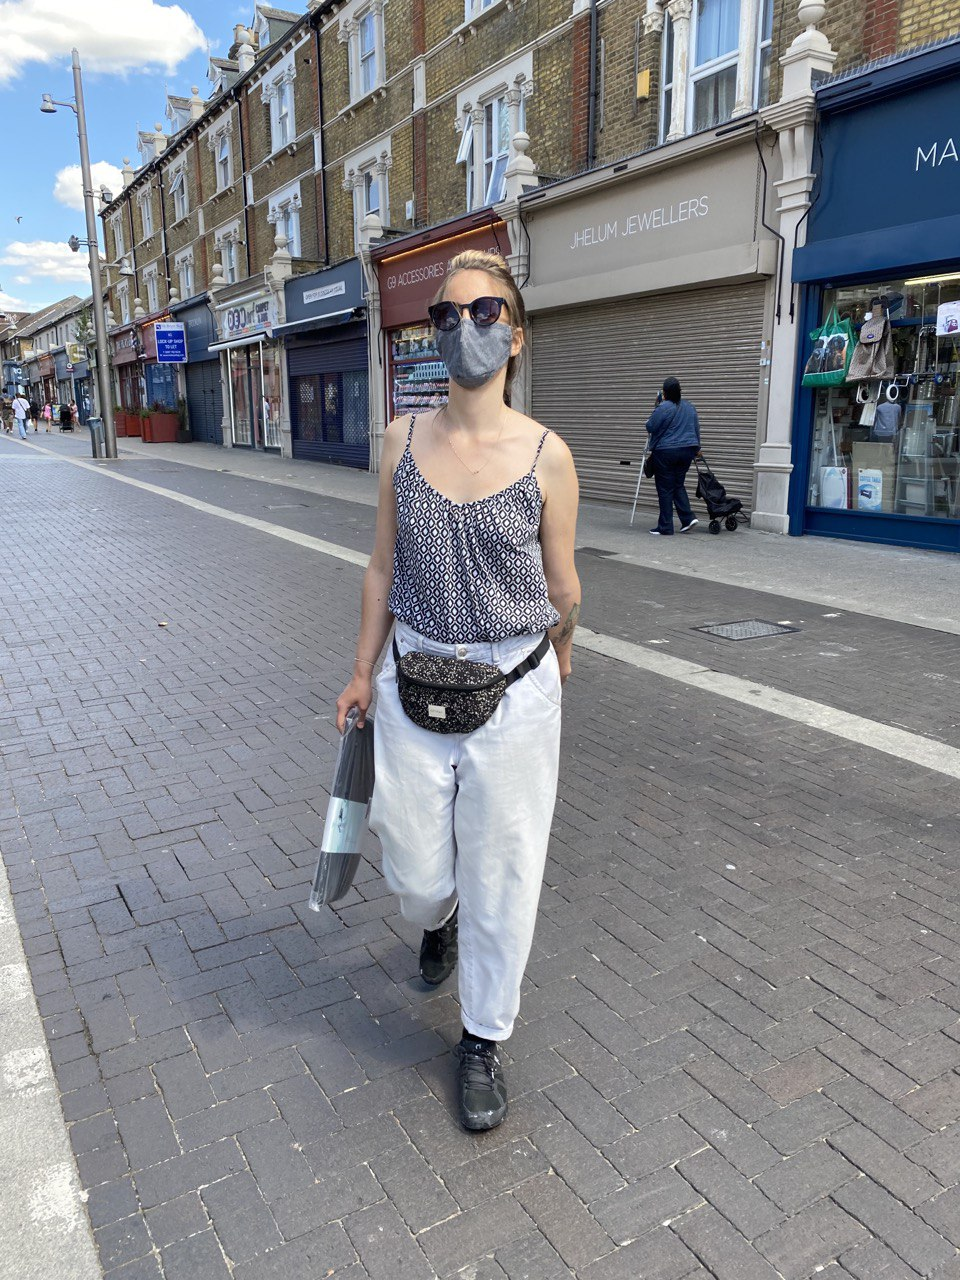 profile image of Adriana wearing a mask standing on the street.